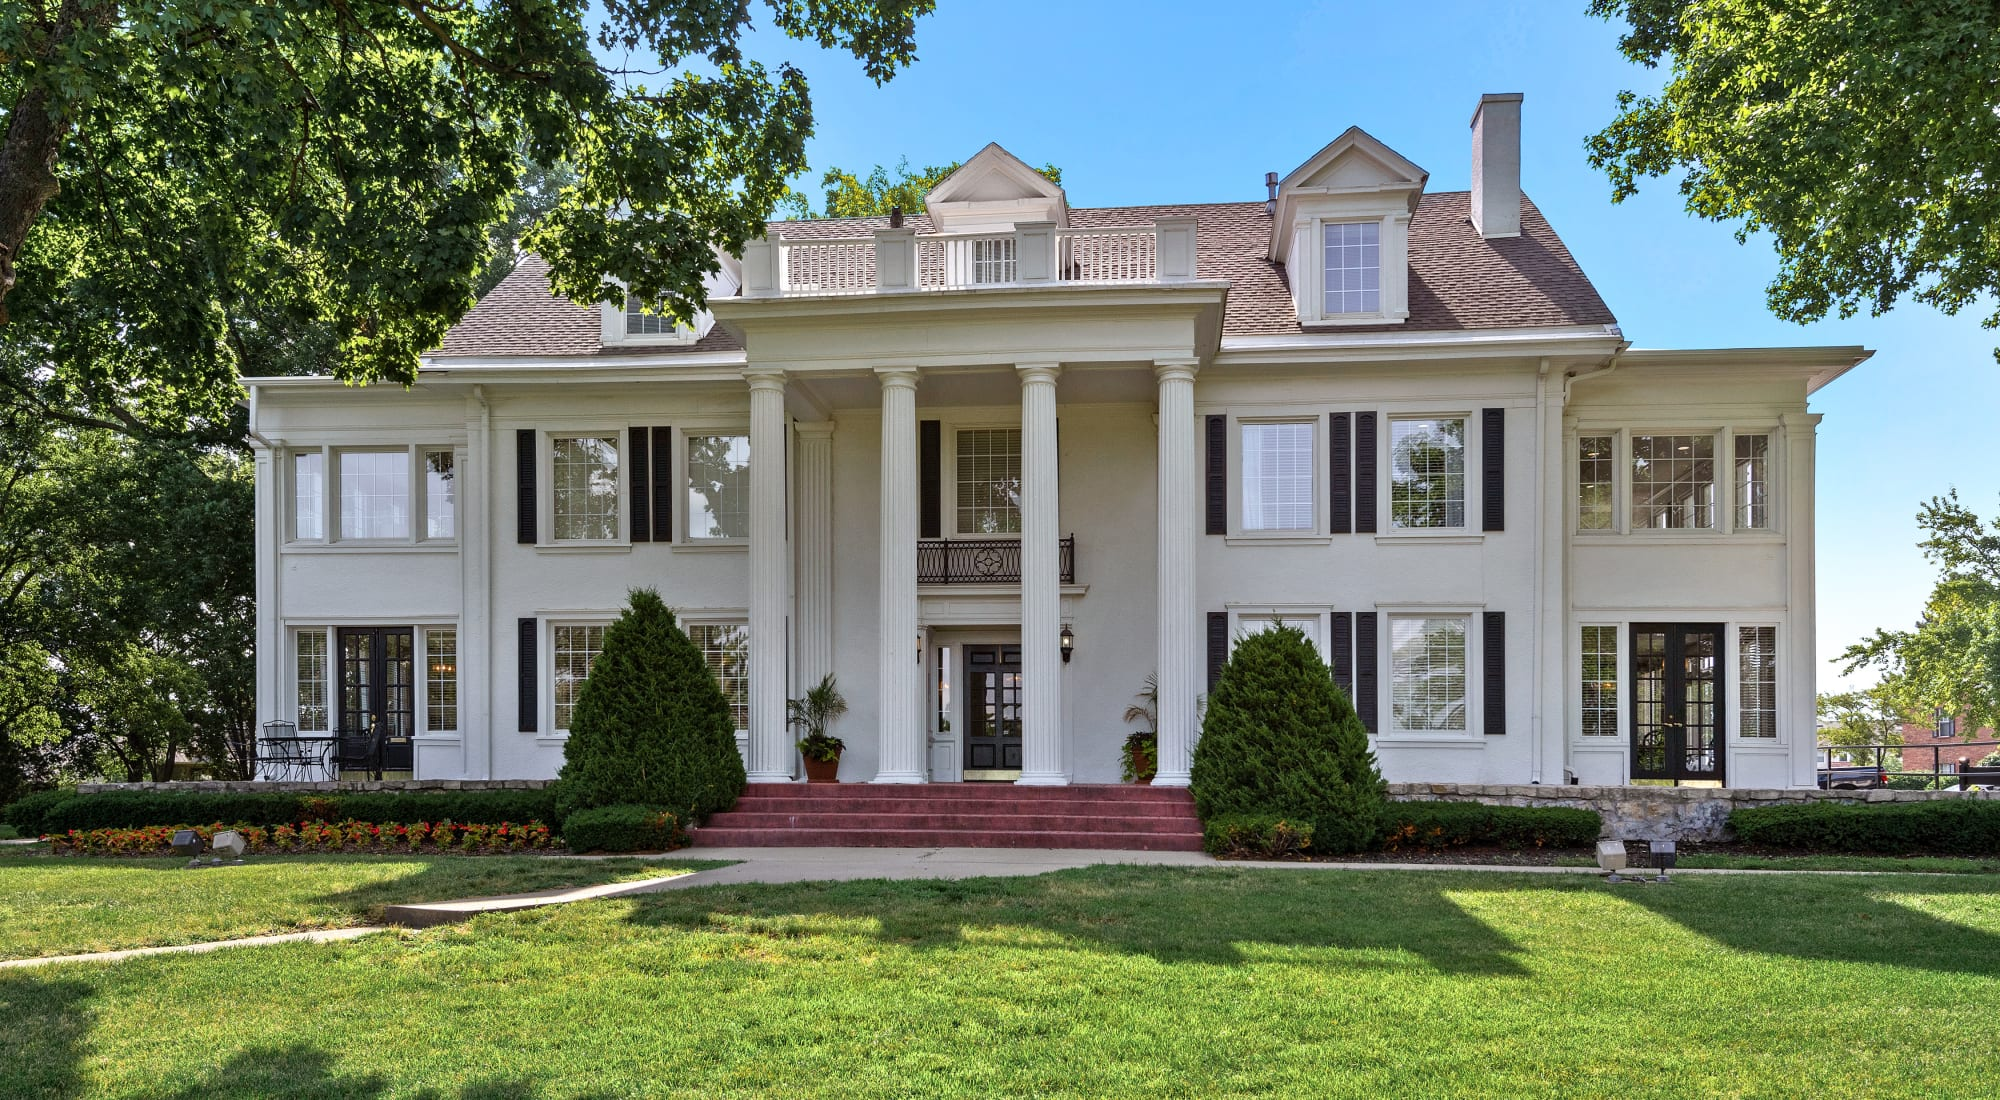 Apply to live at The Mansion in Independence, Missouri